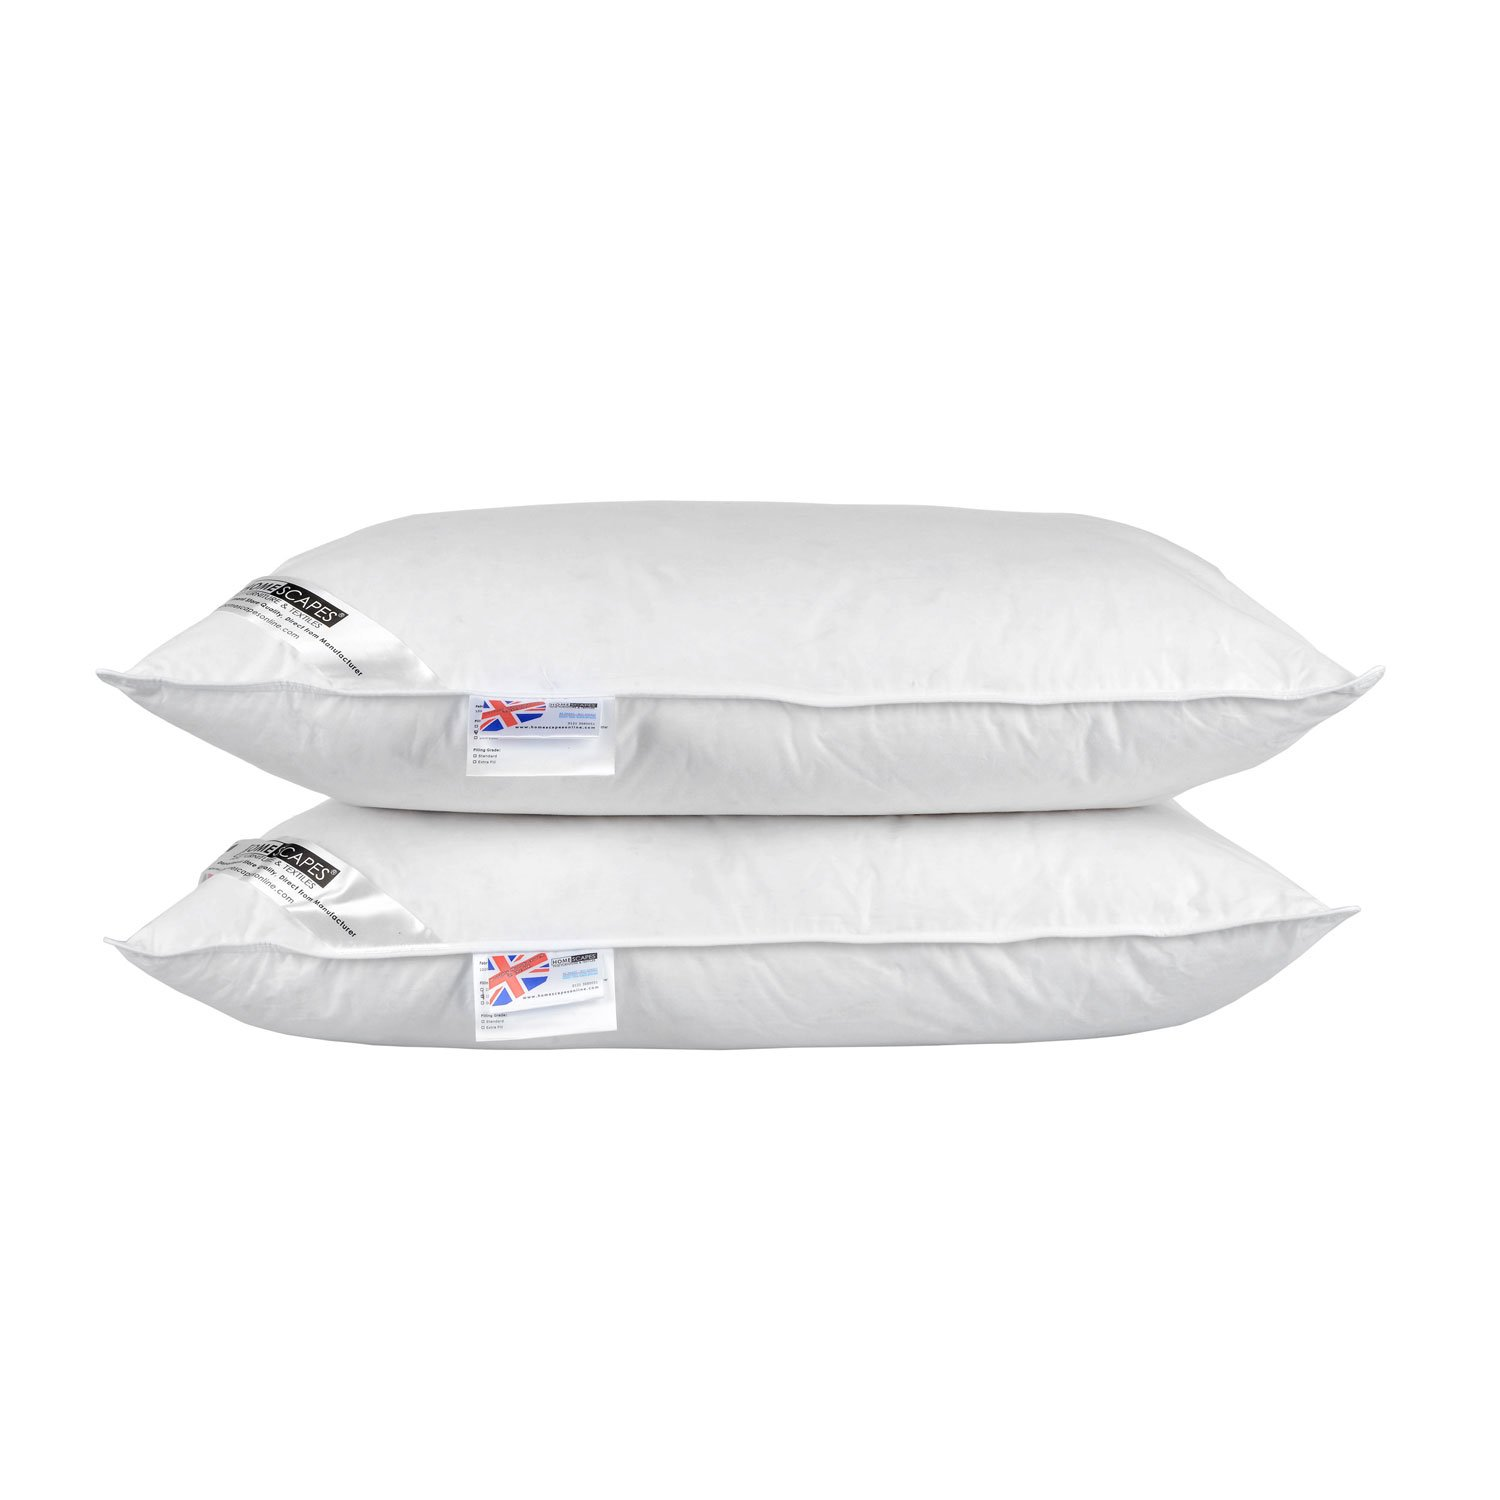 Homescapes - White Duck FEATHER AND DOWN Pillow PAIR - Department Store Quality - Anti Dust Mite - Machine Washable - Soft firmness Others